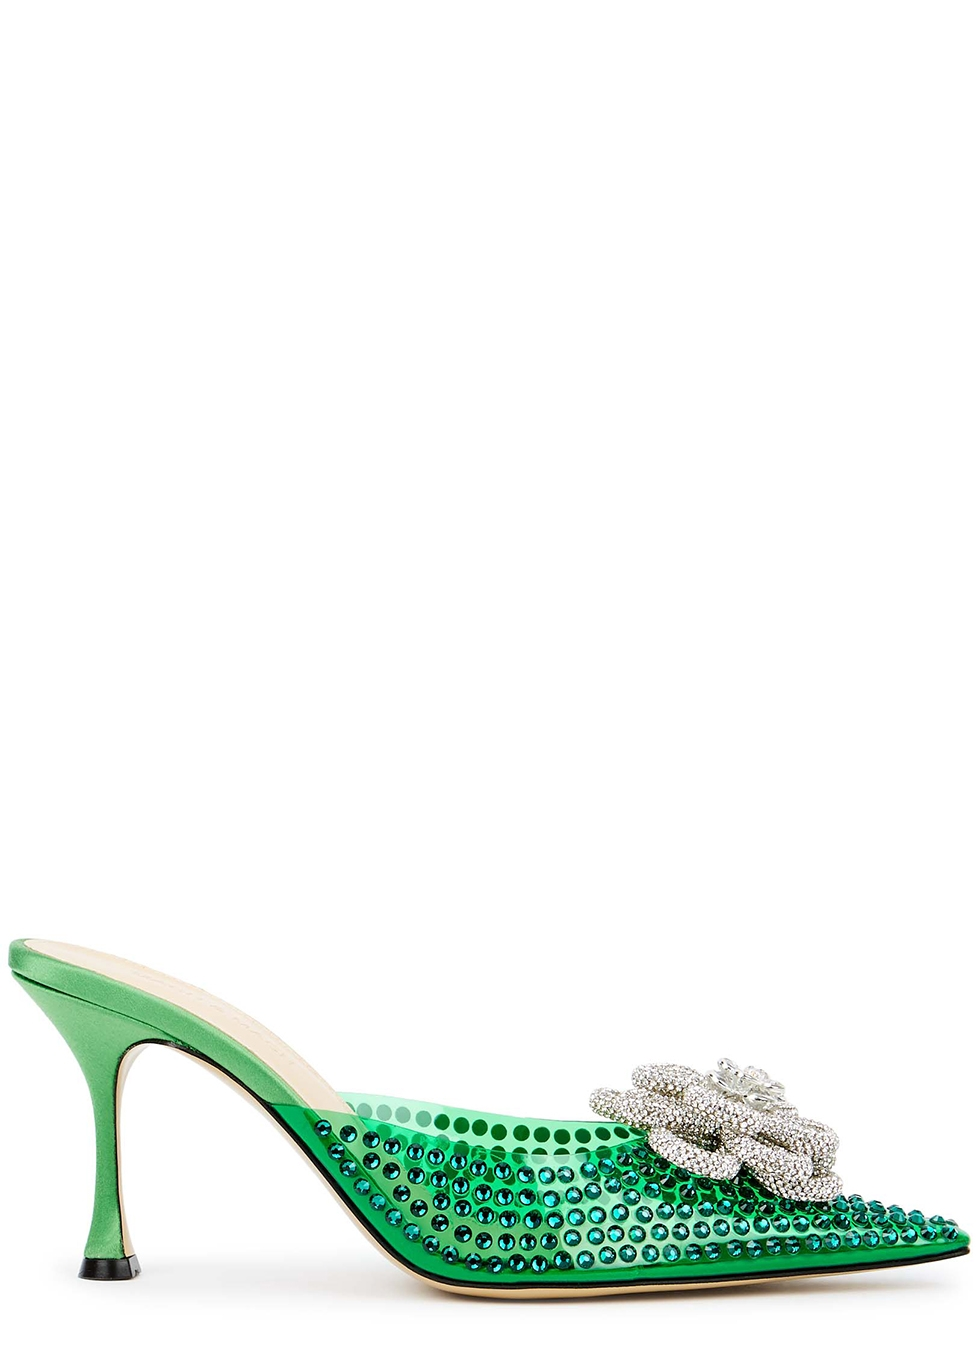 85 green crystal-embellished PVC mules